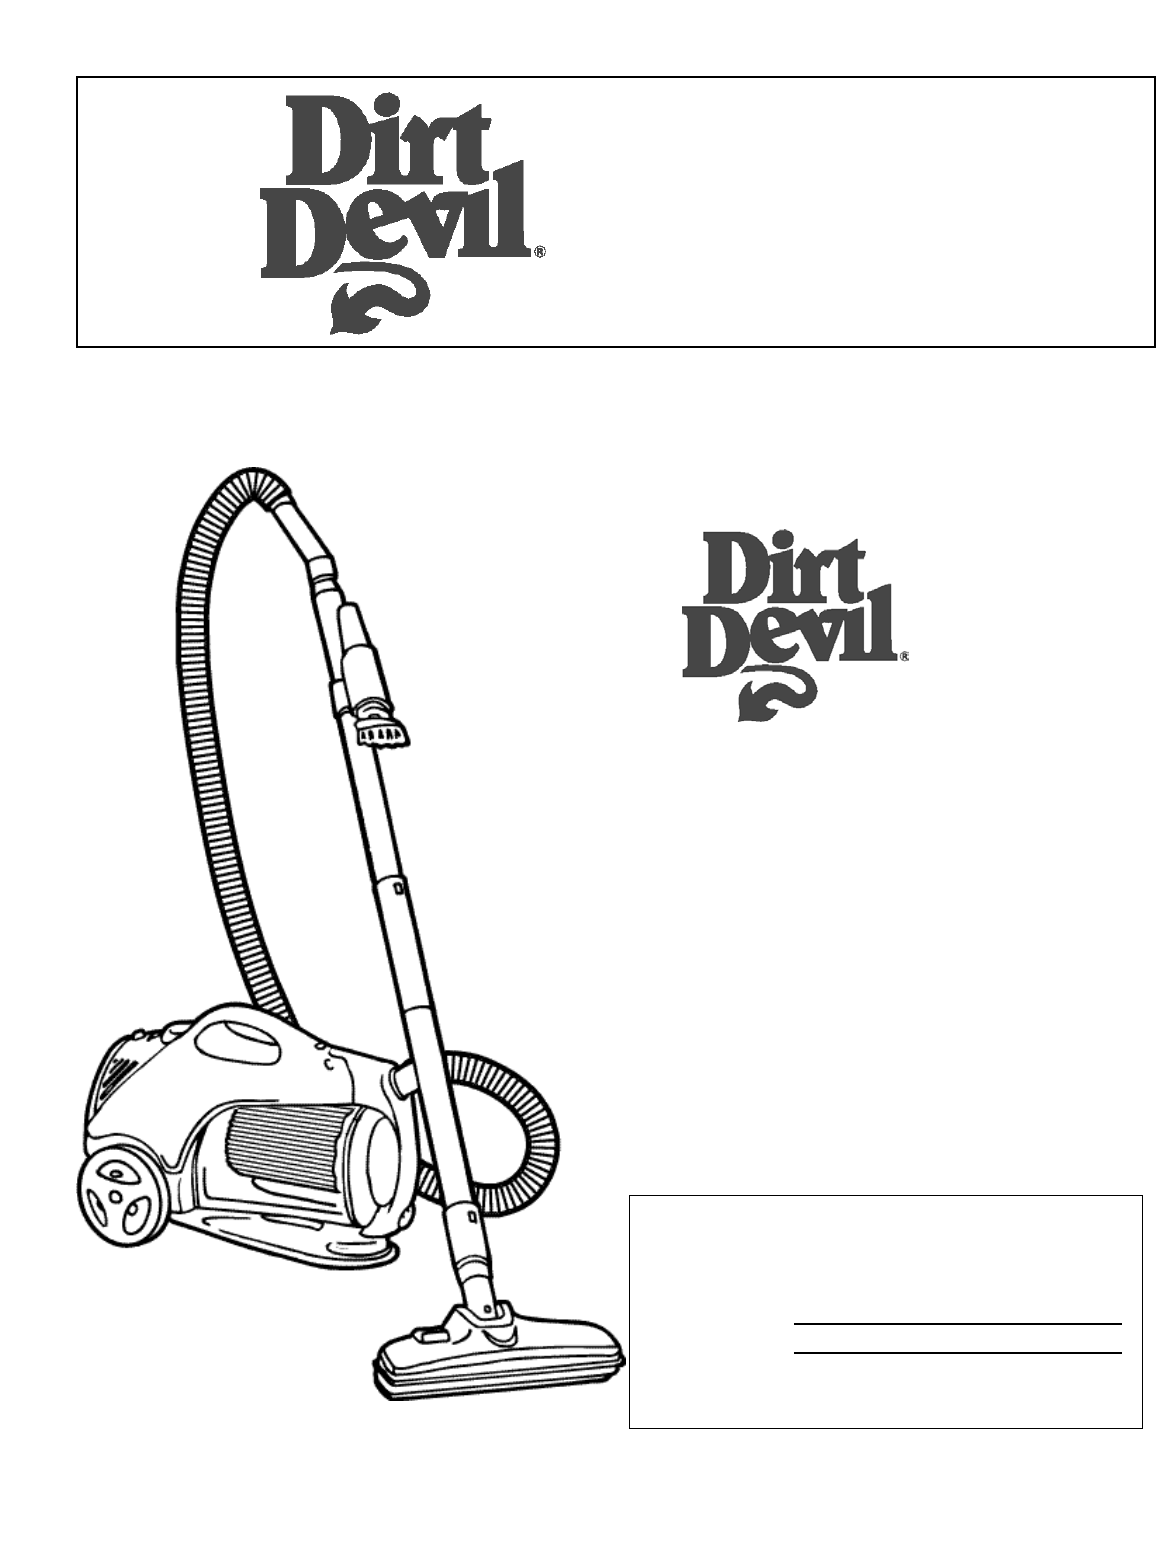 Dirt Devil Vacuum Cleaner Upright Bag Vacuum Cleaner User